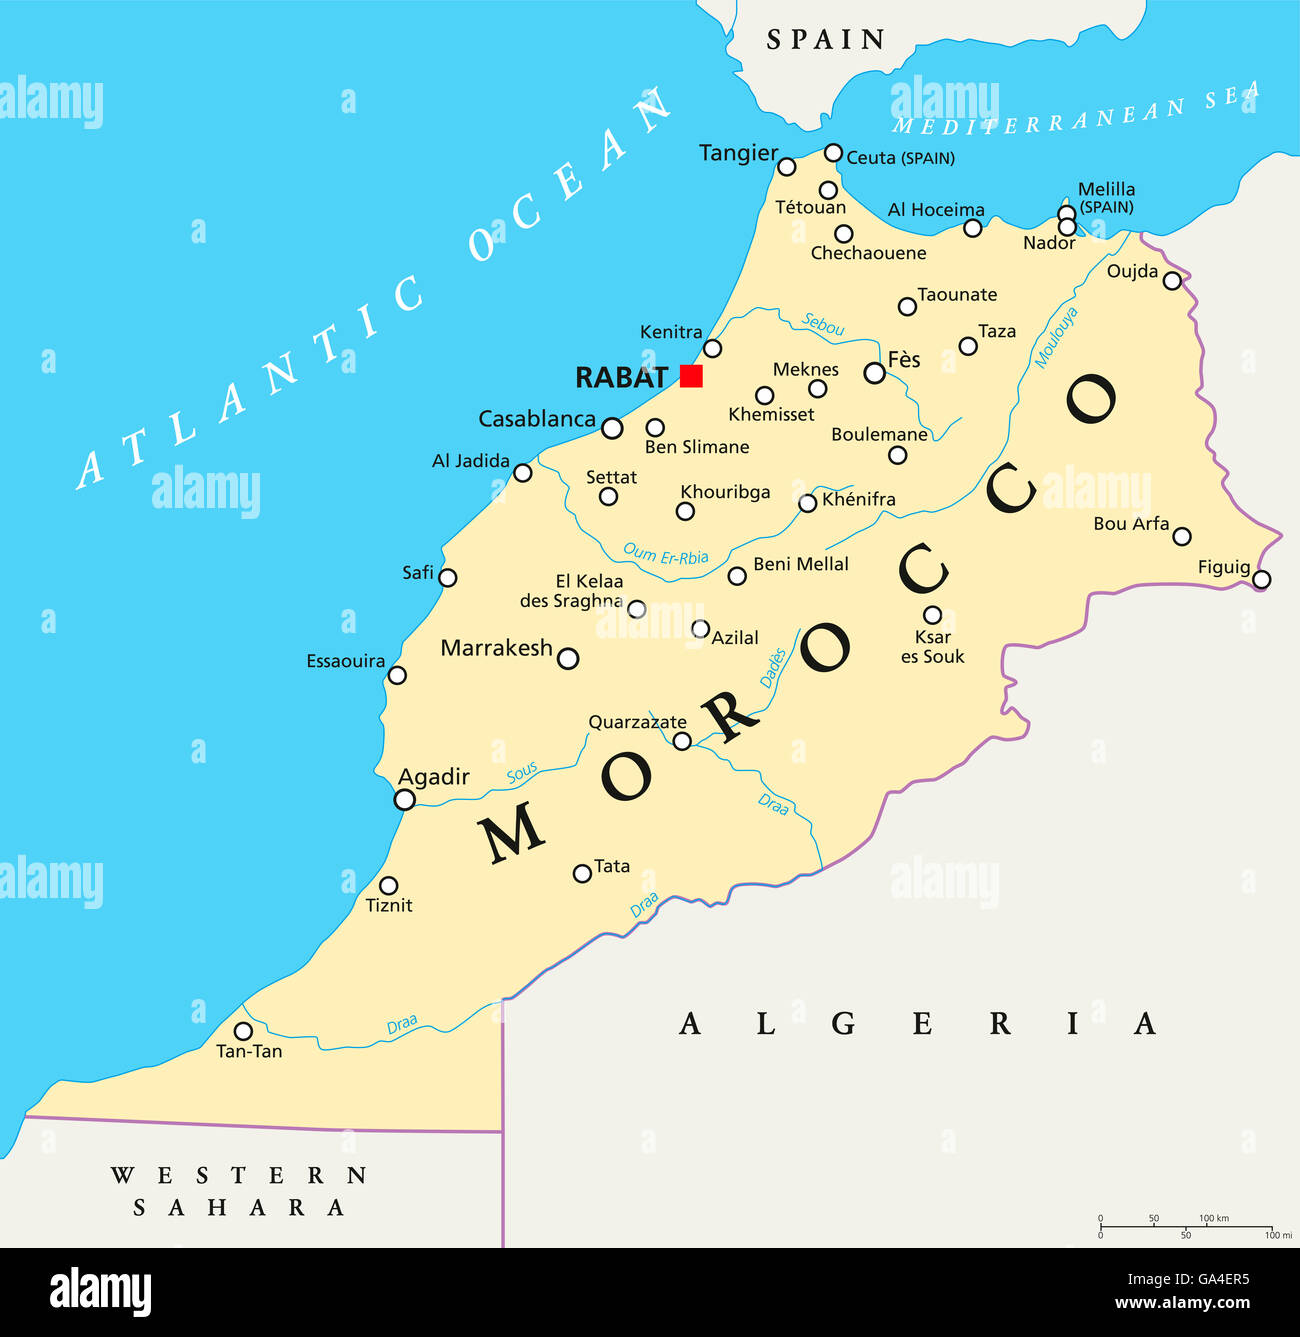 Morocco political map with capital Rabat, national borders ...